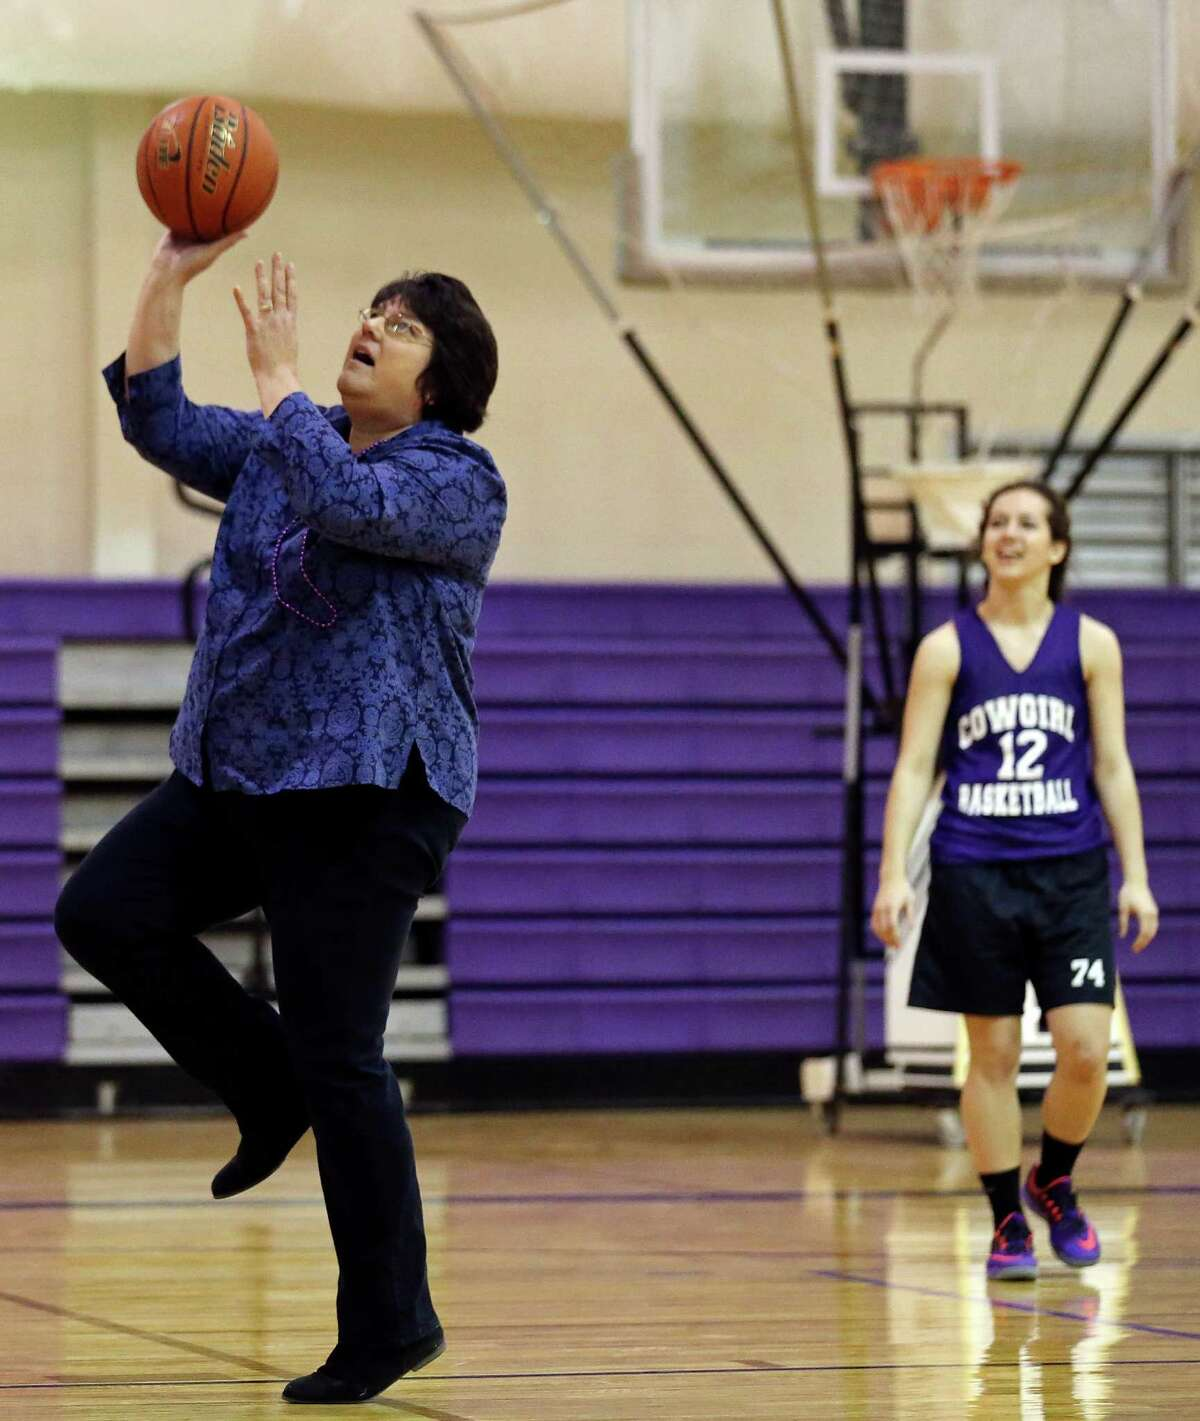 Annette Nester-Vordenbaum, a member of the 1979 D'Hanis Cowgirls basketball team, shoots as current team member Sarah Craft looks on during practice on March 2, 2015, in D'Hanis.